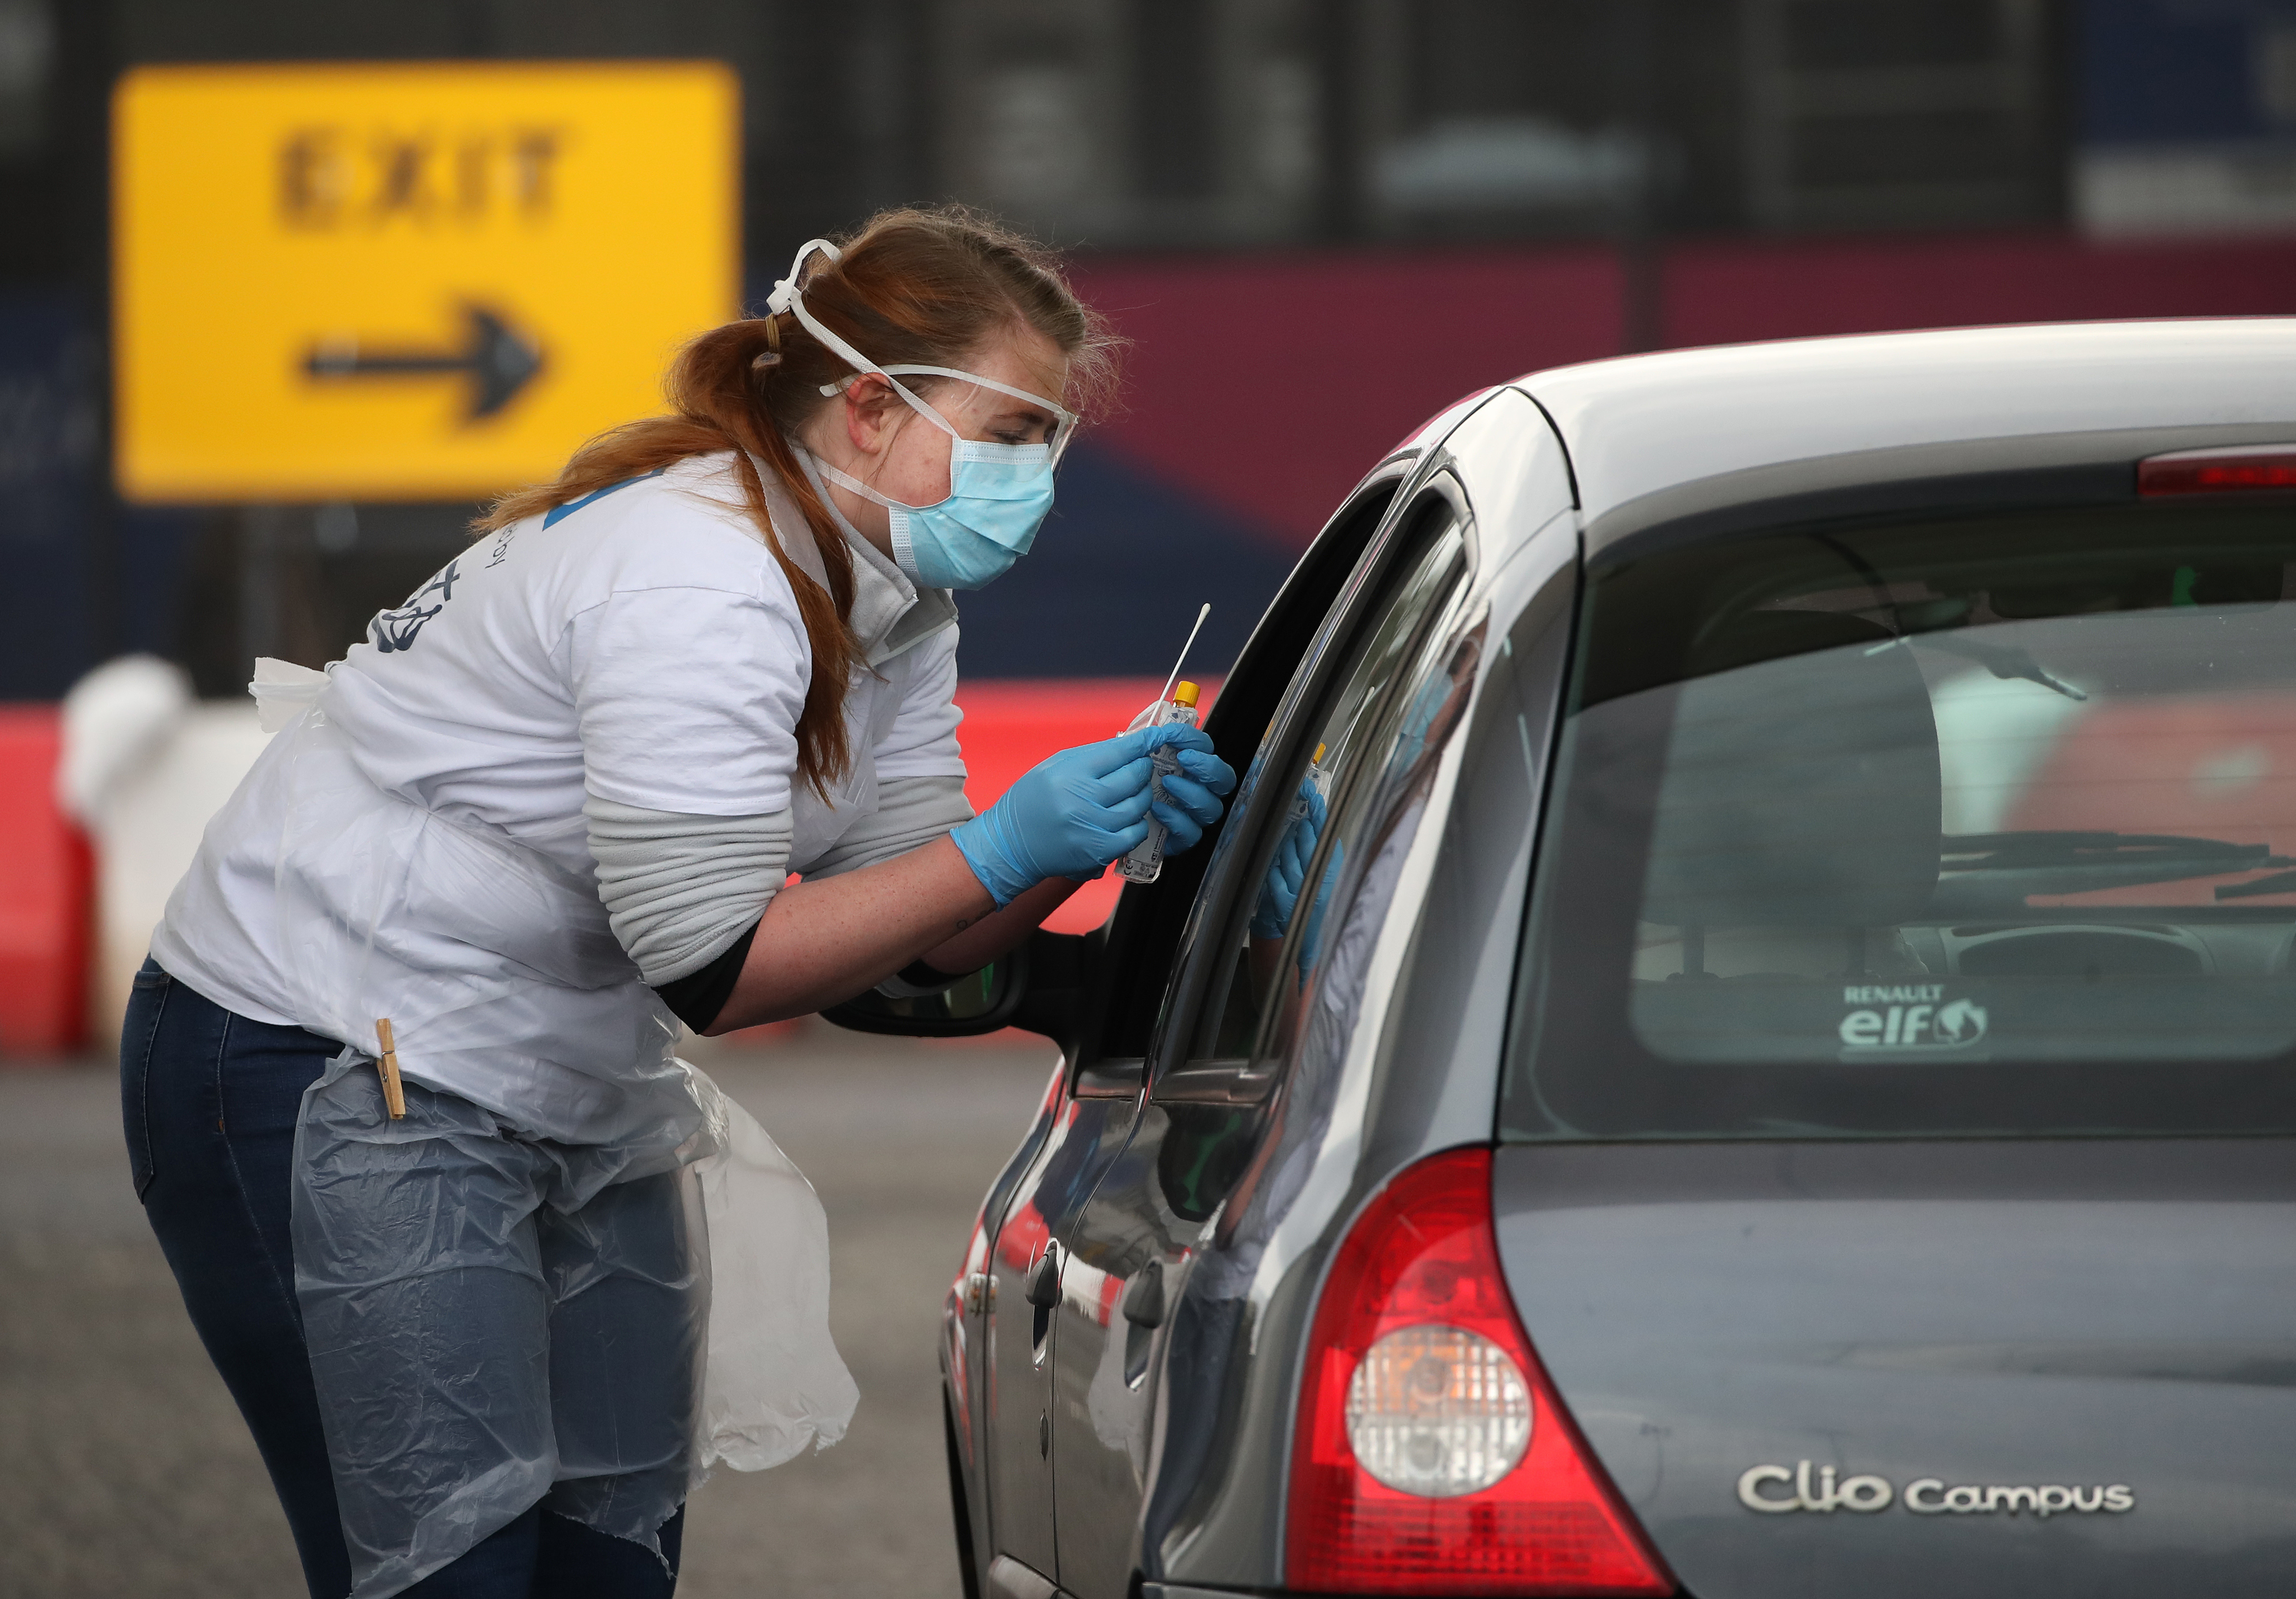 A test sample is taken at a Covid-19 testing centre at Glasgow Airport, as the UK continues in lockdown to help curb the spread of the coronavirus.